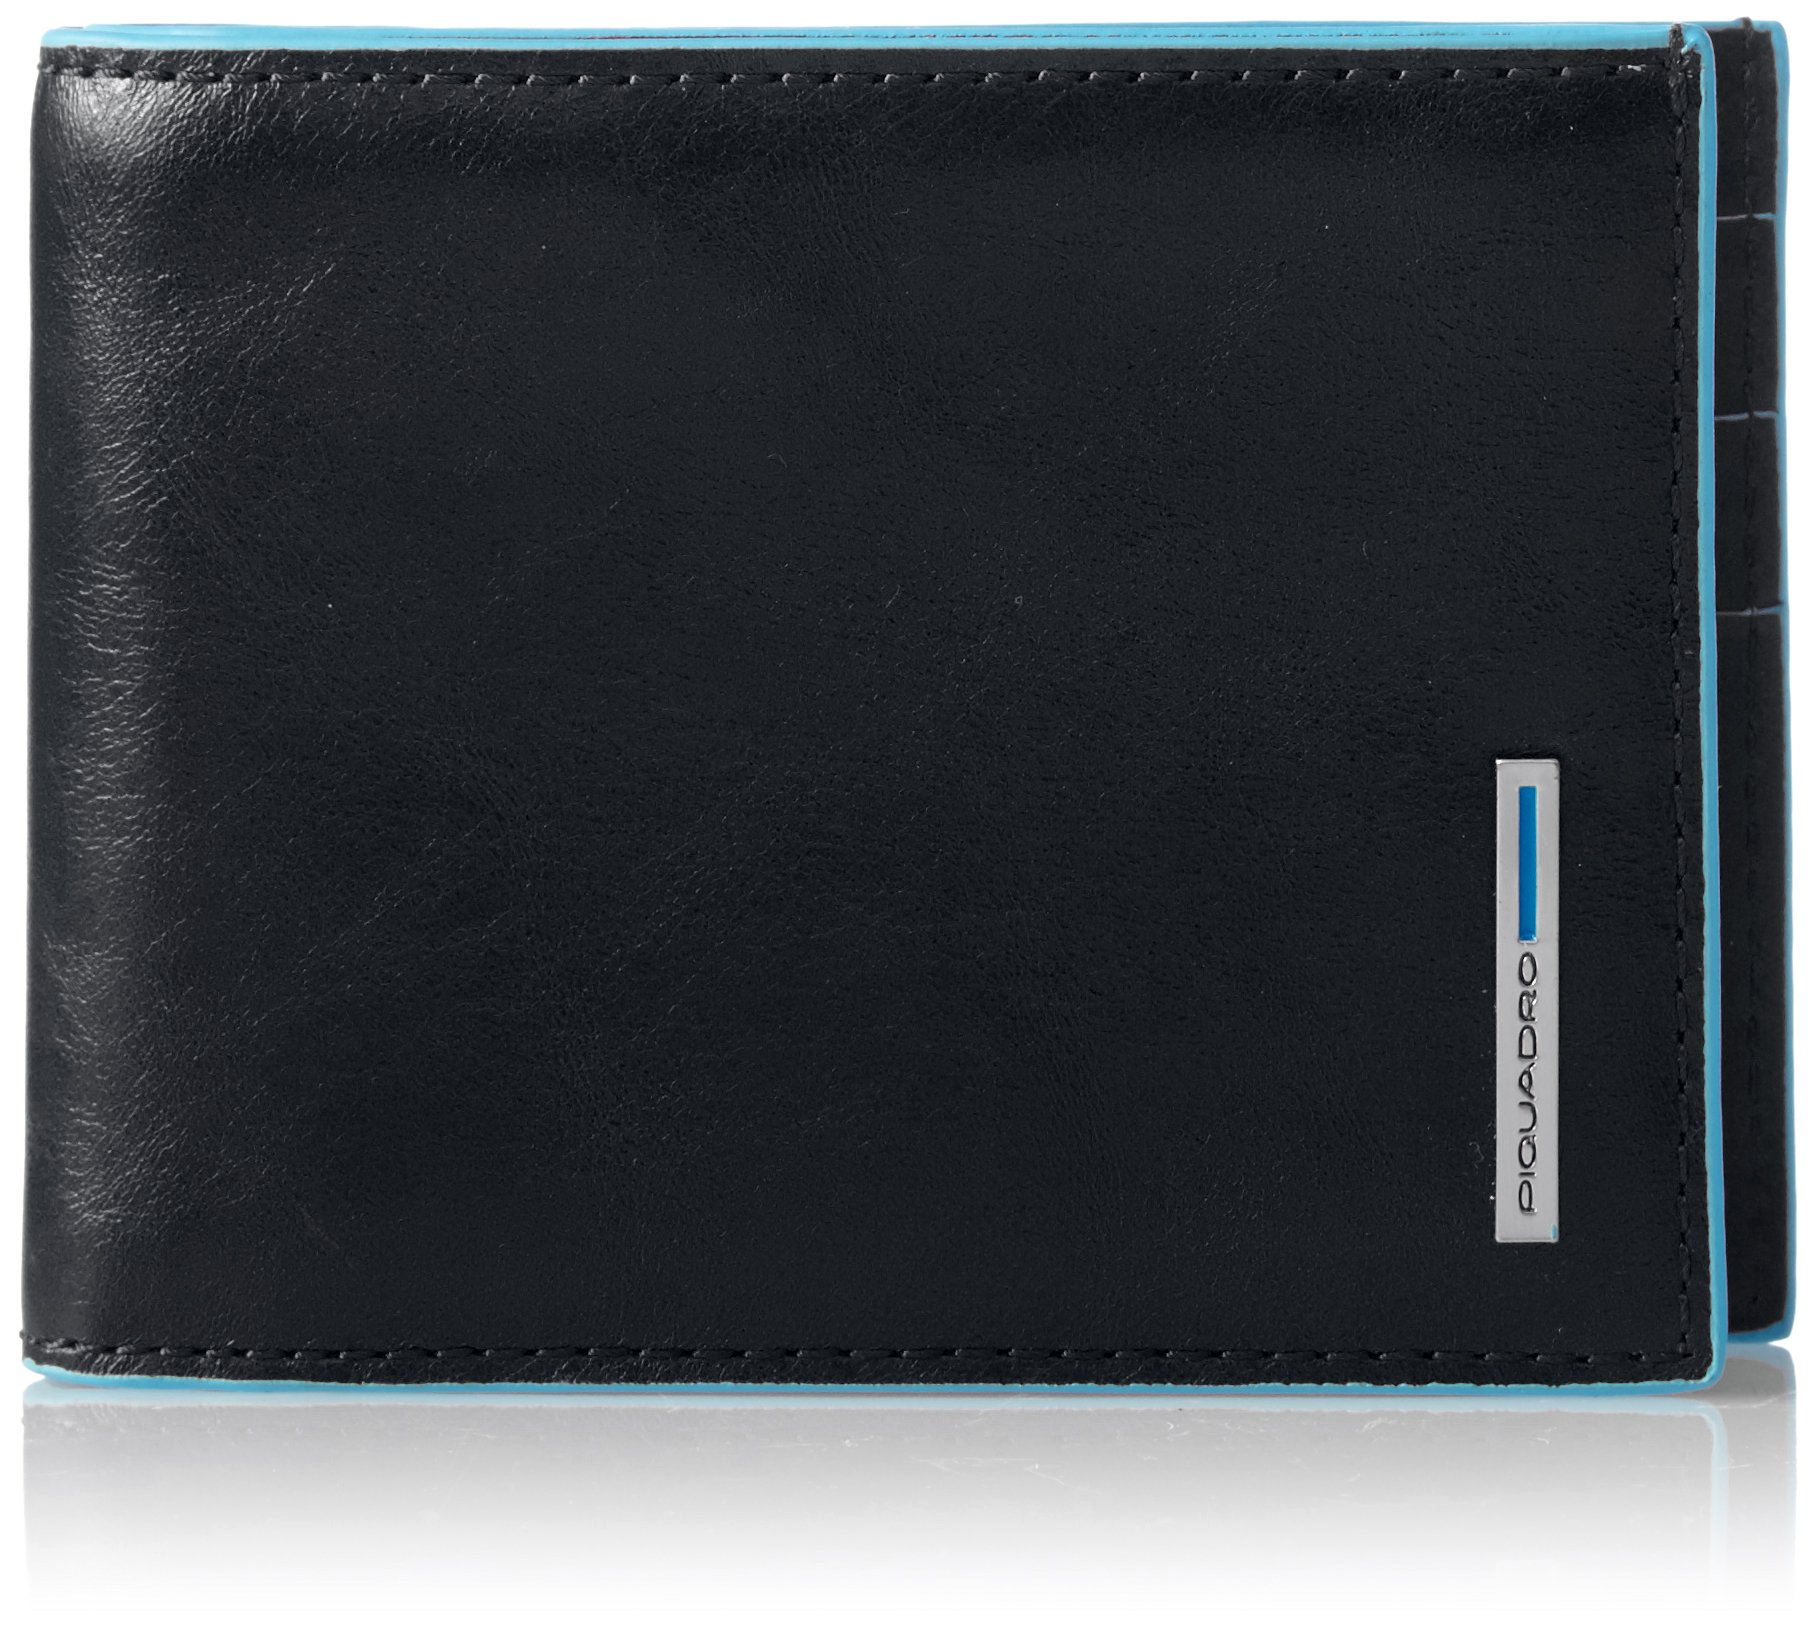 Piquadro Leather Wallet, Black, One Size by Piquadro